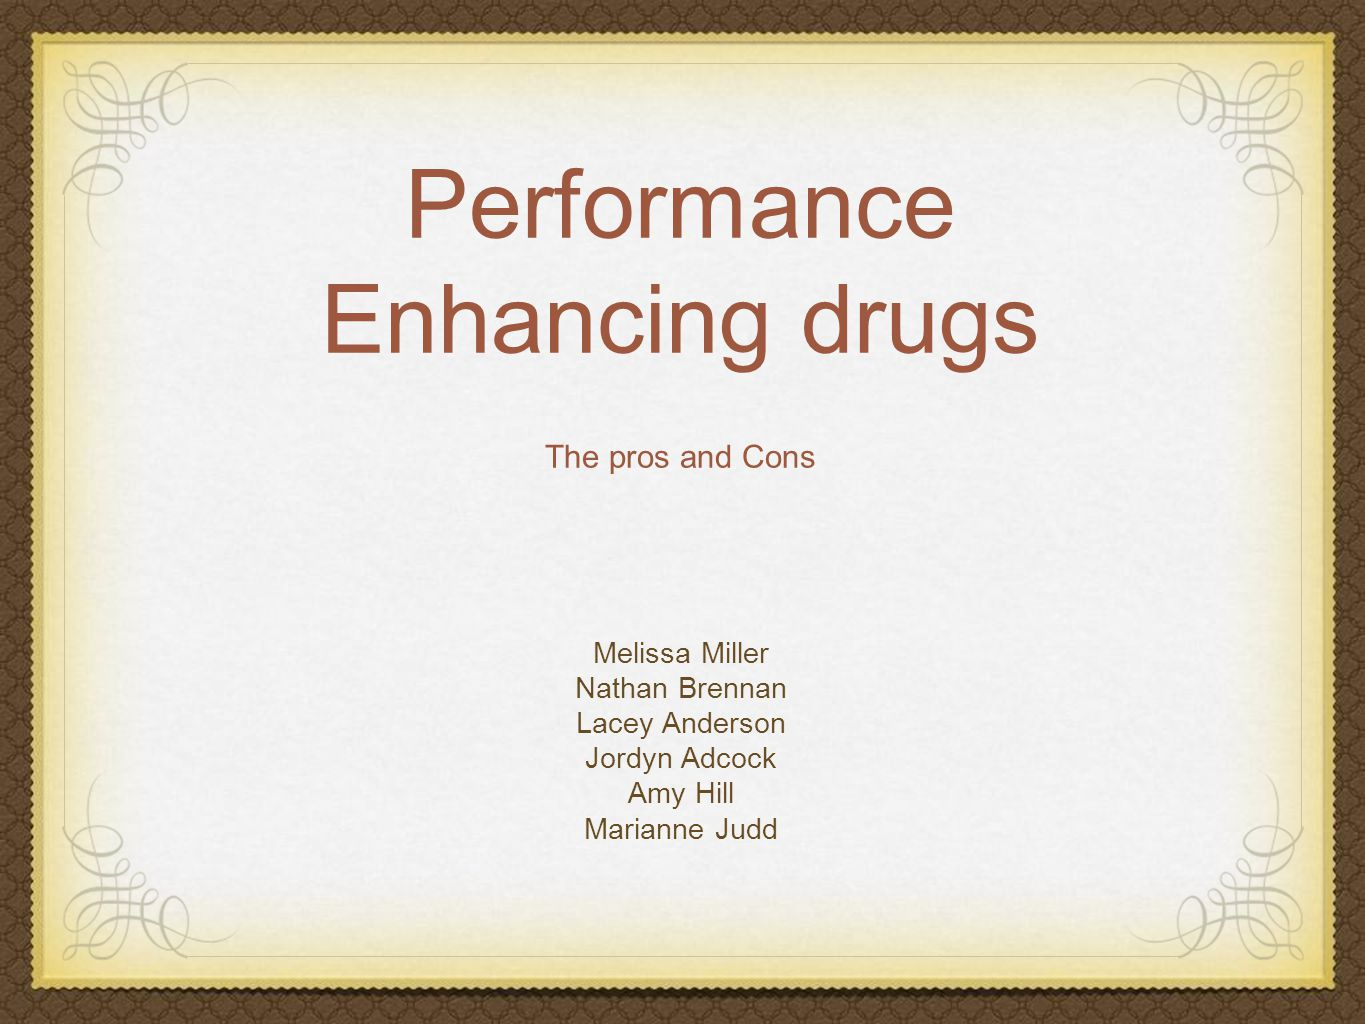 Performance Enhancing drugs The pros and Cons Melissa Miller Nathan Brennan Lacey Anderson Jordyn Adcock Amy Hill Marianne Judd